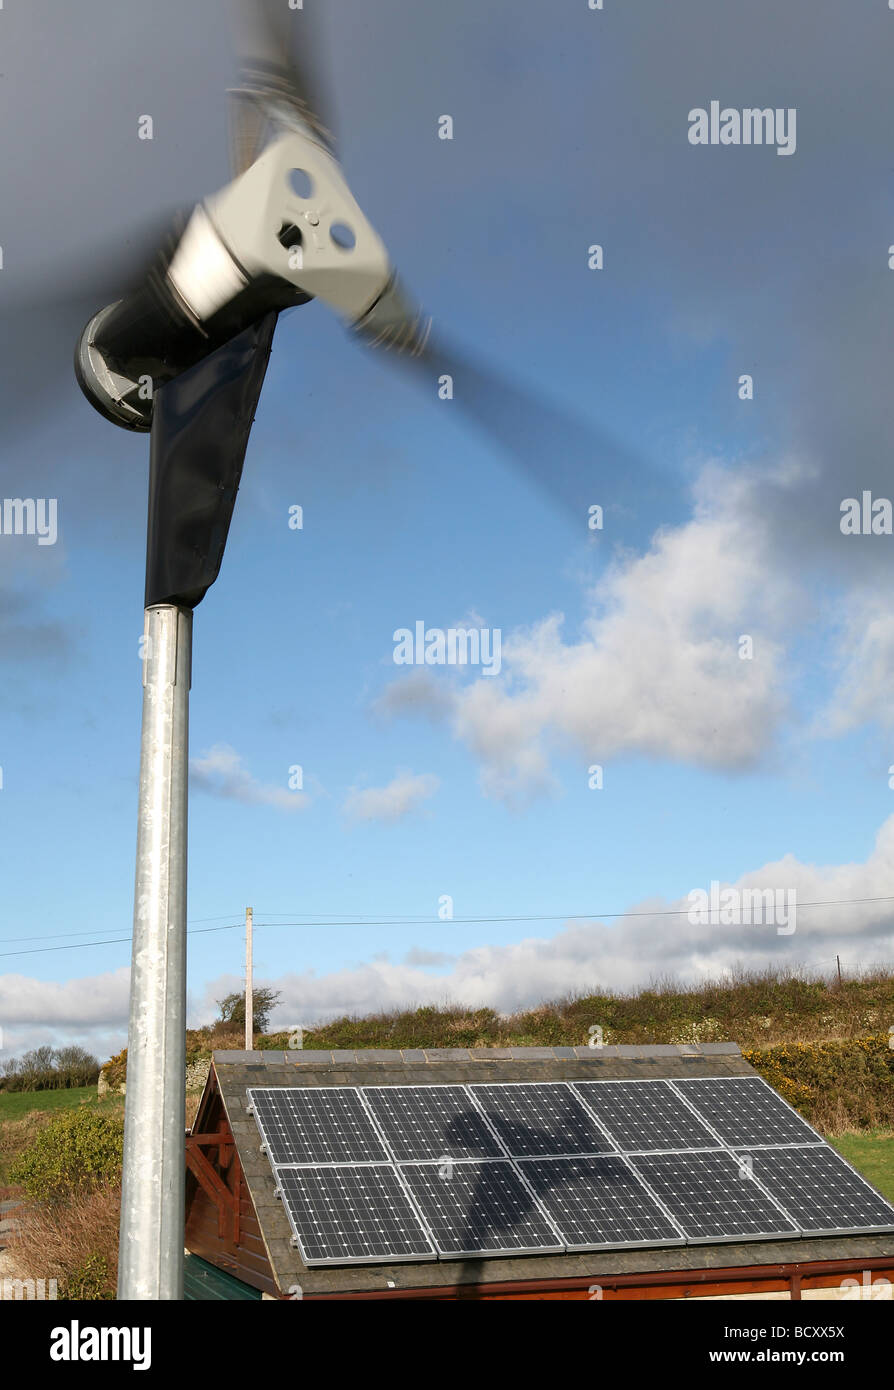 Domestic wind turbine with photovoltaic cells - Stock Image